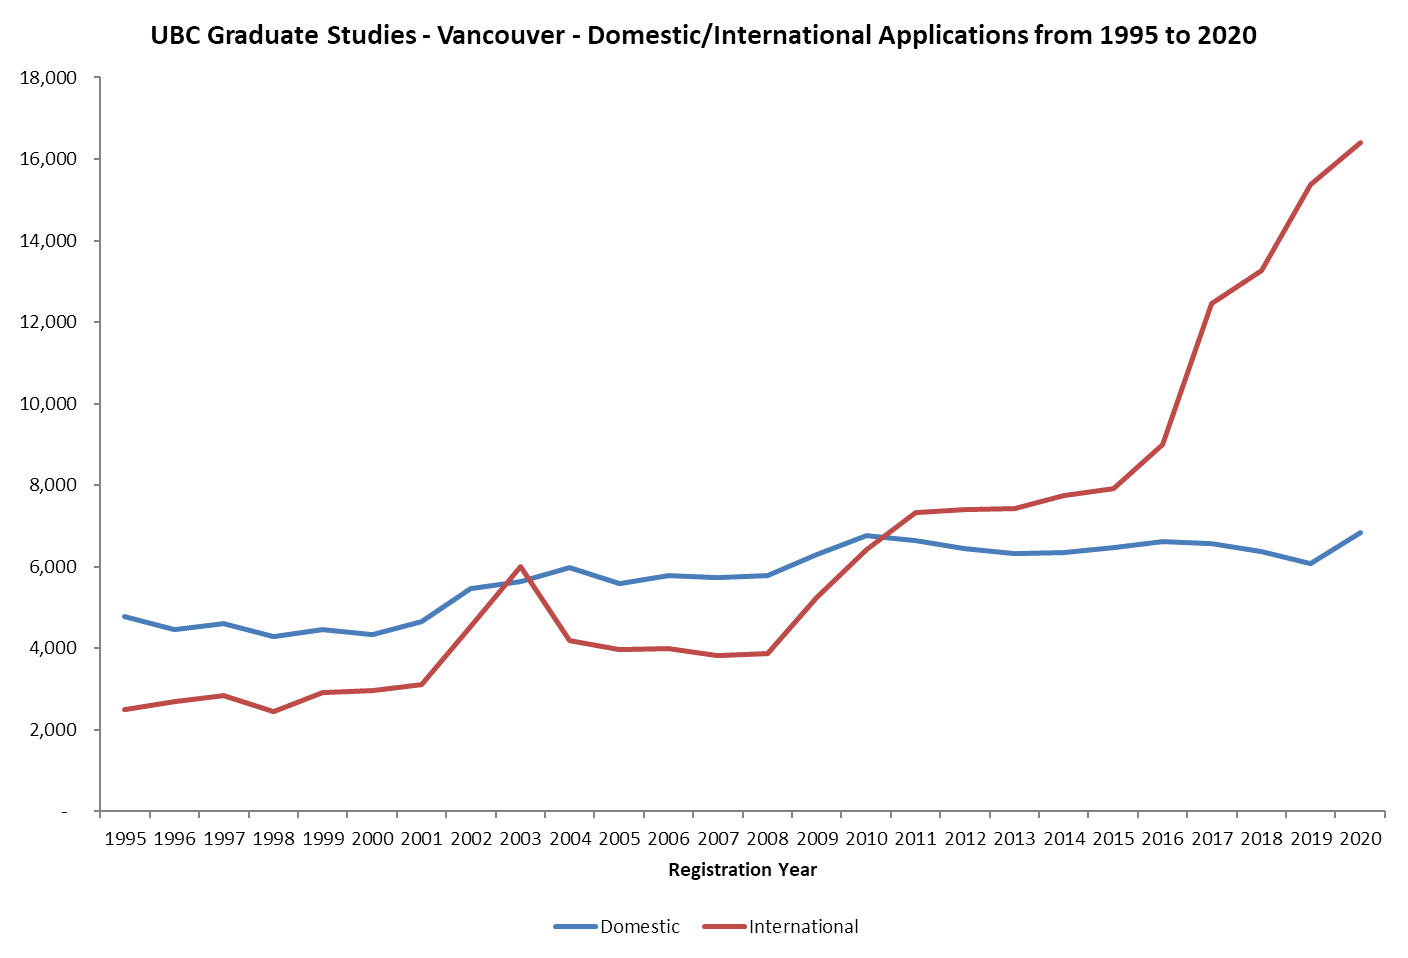 UBC Graduate Studies - Masters and Doctoral International Application Numbers from 1995 to 2020